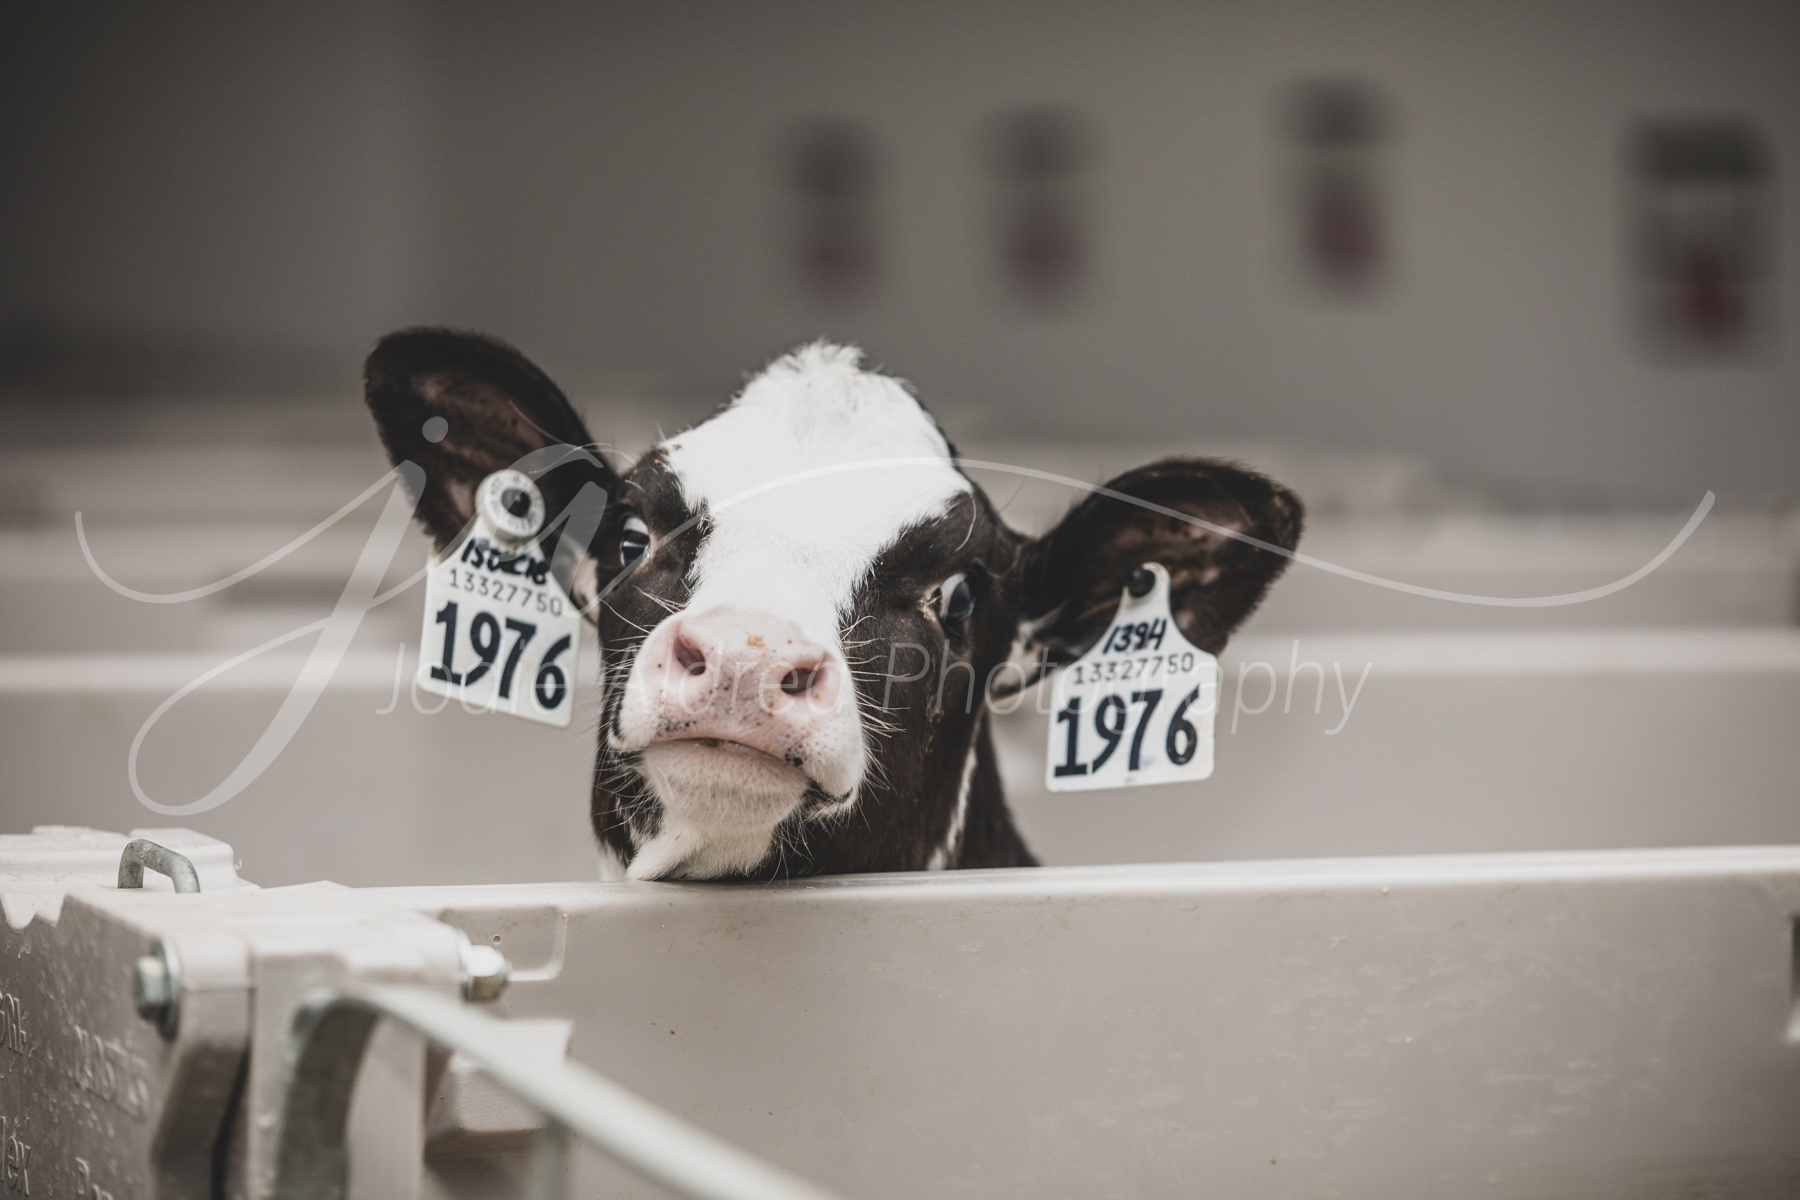 Jodie-Aldred-Photography-Ontario-Agriculture-Photographer-Farm-Outdoors-Nature-Middlesex-Elgin-Chathma-Kent-Huron-Photographer-dairy-calf-looking-cute.jpg